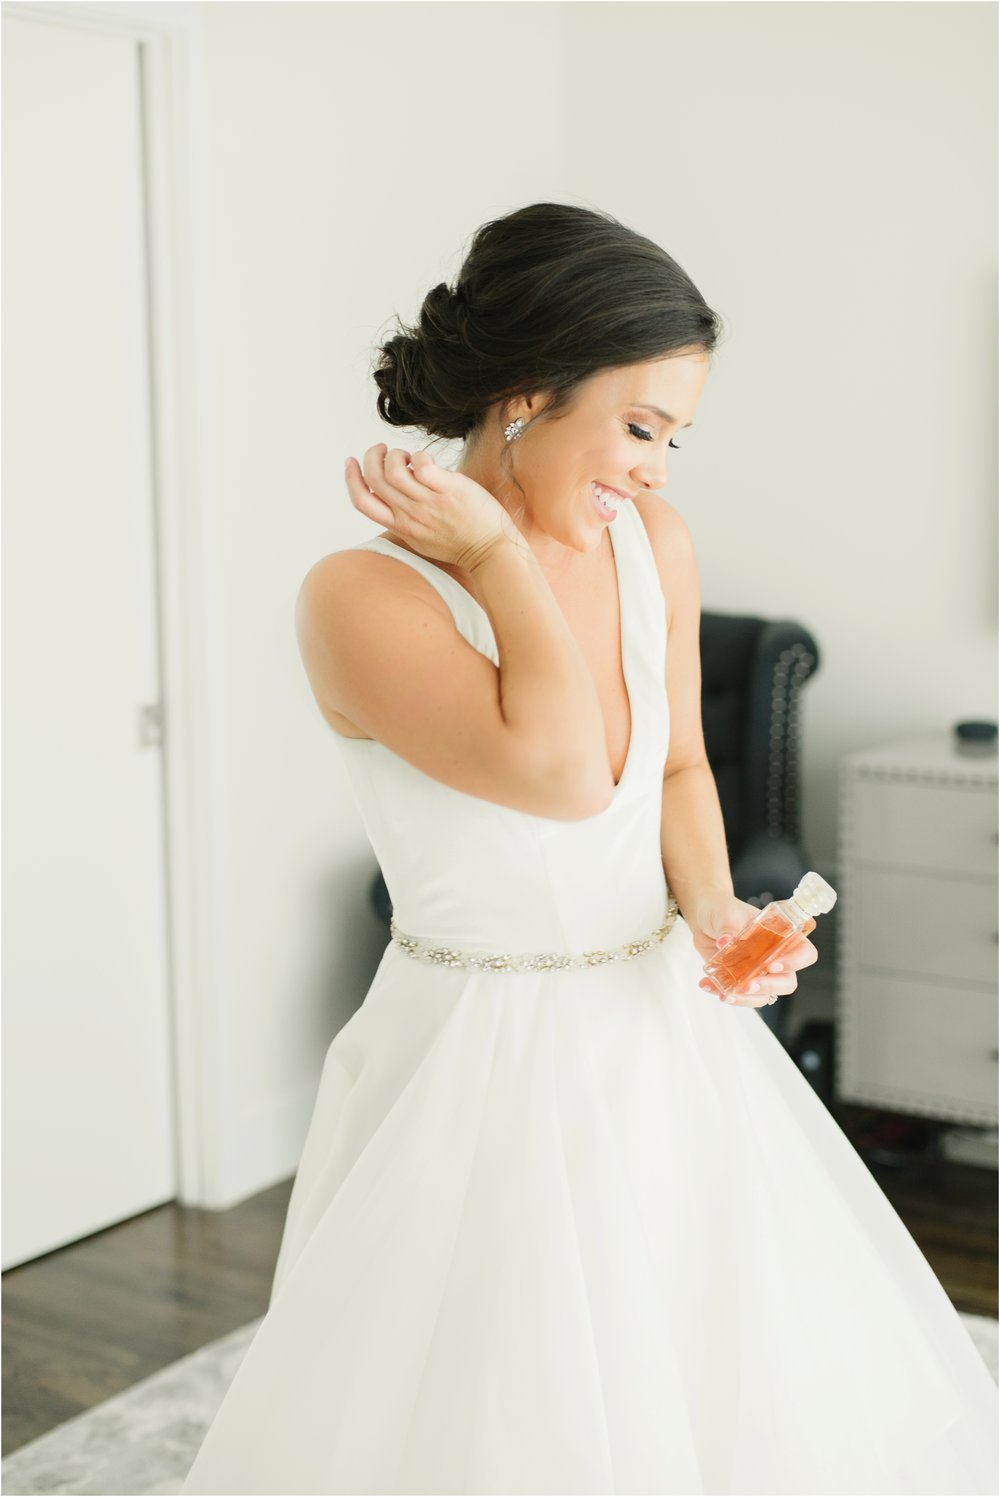 MattandJulieWeddings-RoomonMain-PerkinsChapelWedding-DallasWeddings09.jpg